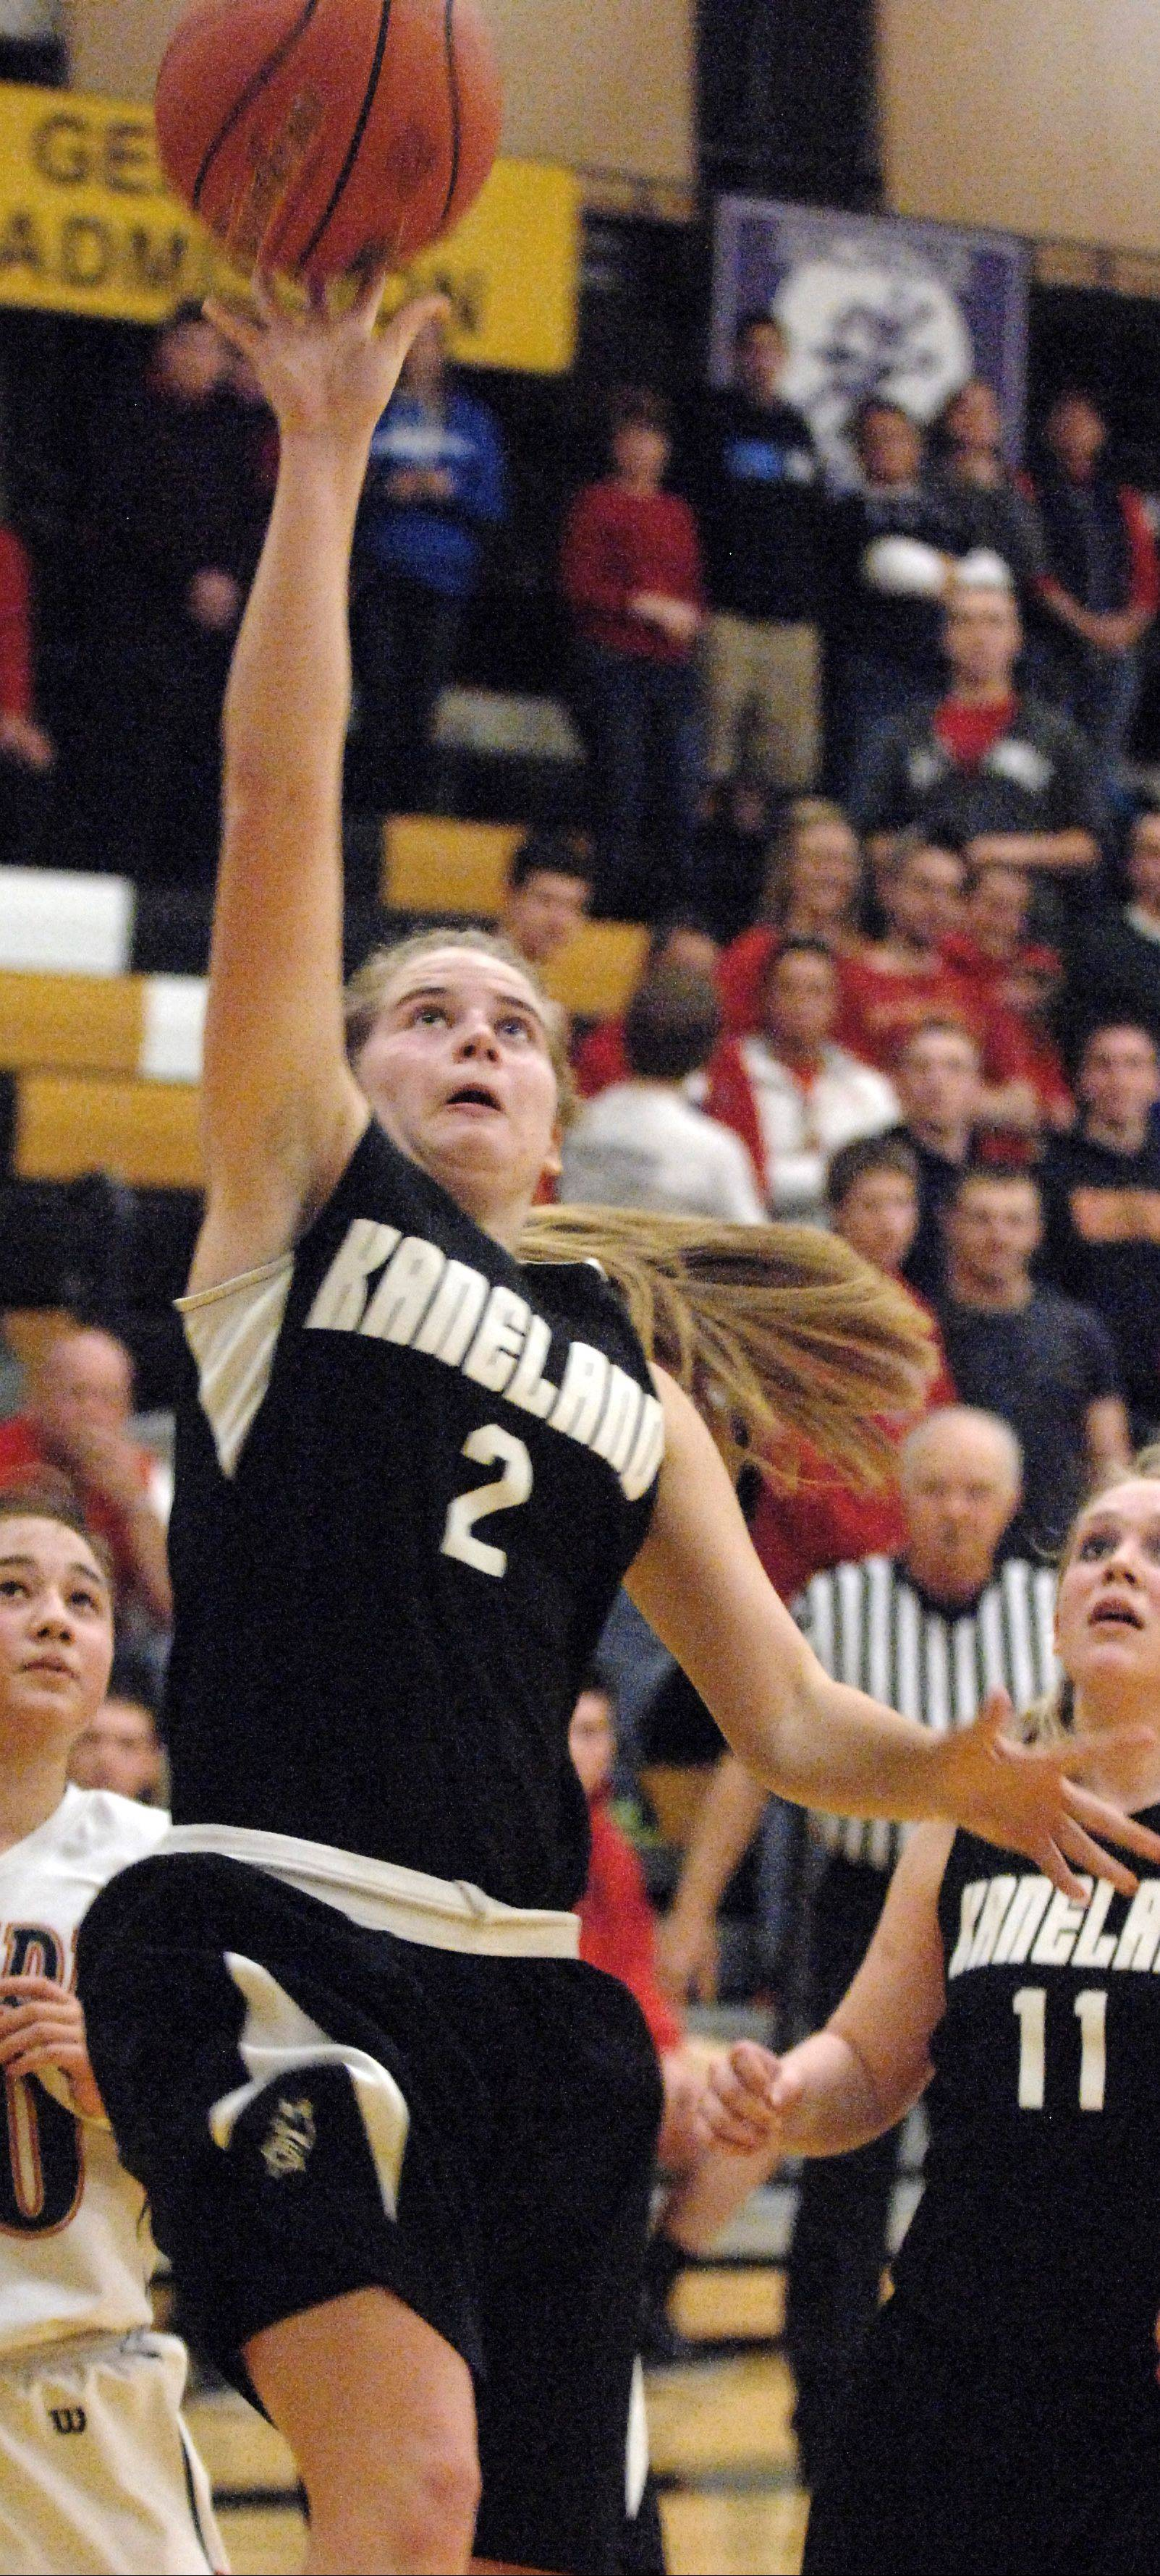 Kaneland�s Sarah Grams, pictured going in for a layup in last year�s sectional championship game against Belvidere North, is one of the seniors who has helped turn the Knights� record around the past few years.